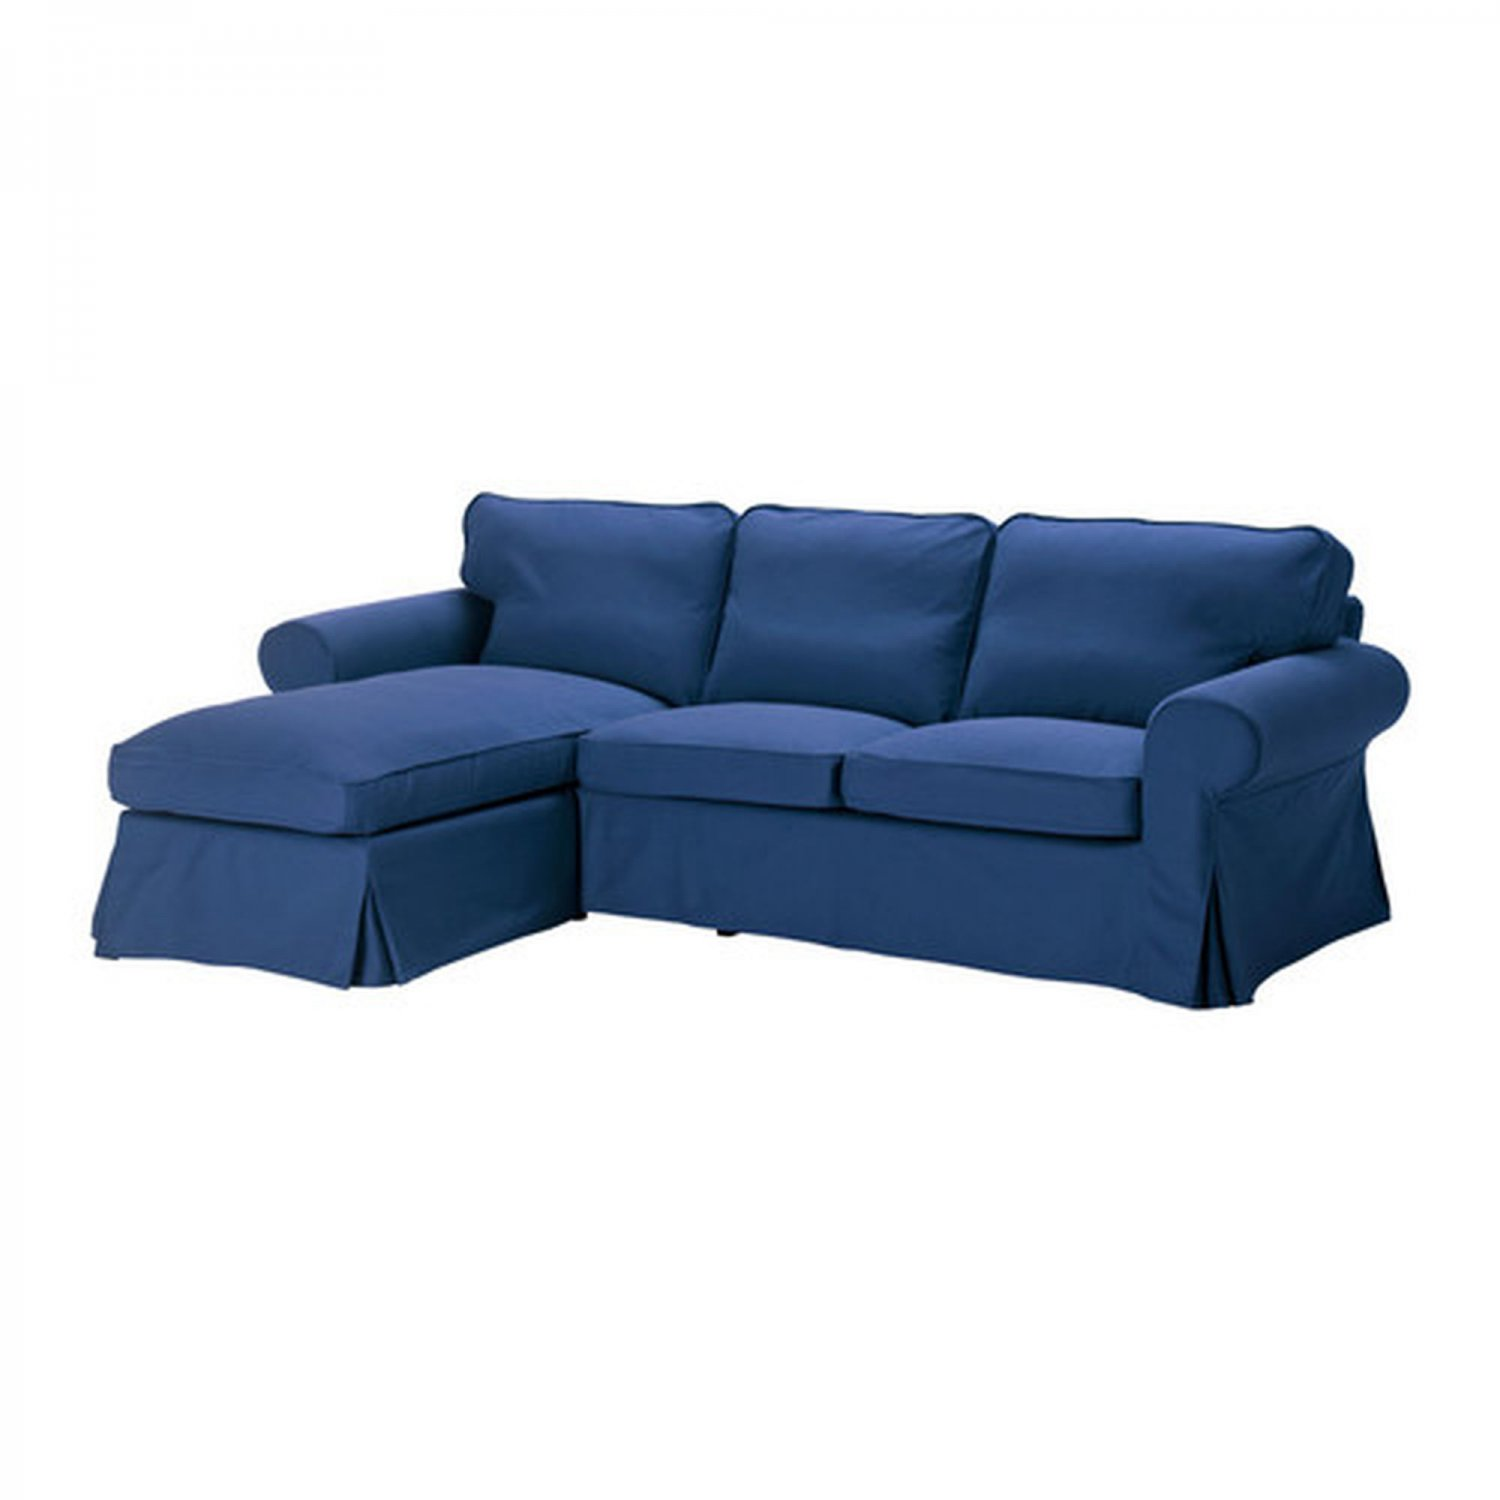 Ikea ektorp loveseat with chaise lounge cover slipcover for Couch with 2 chaises